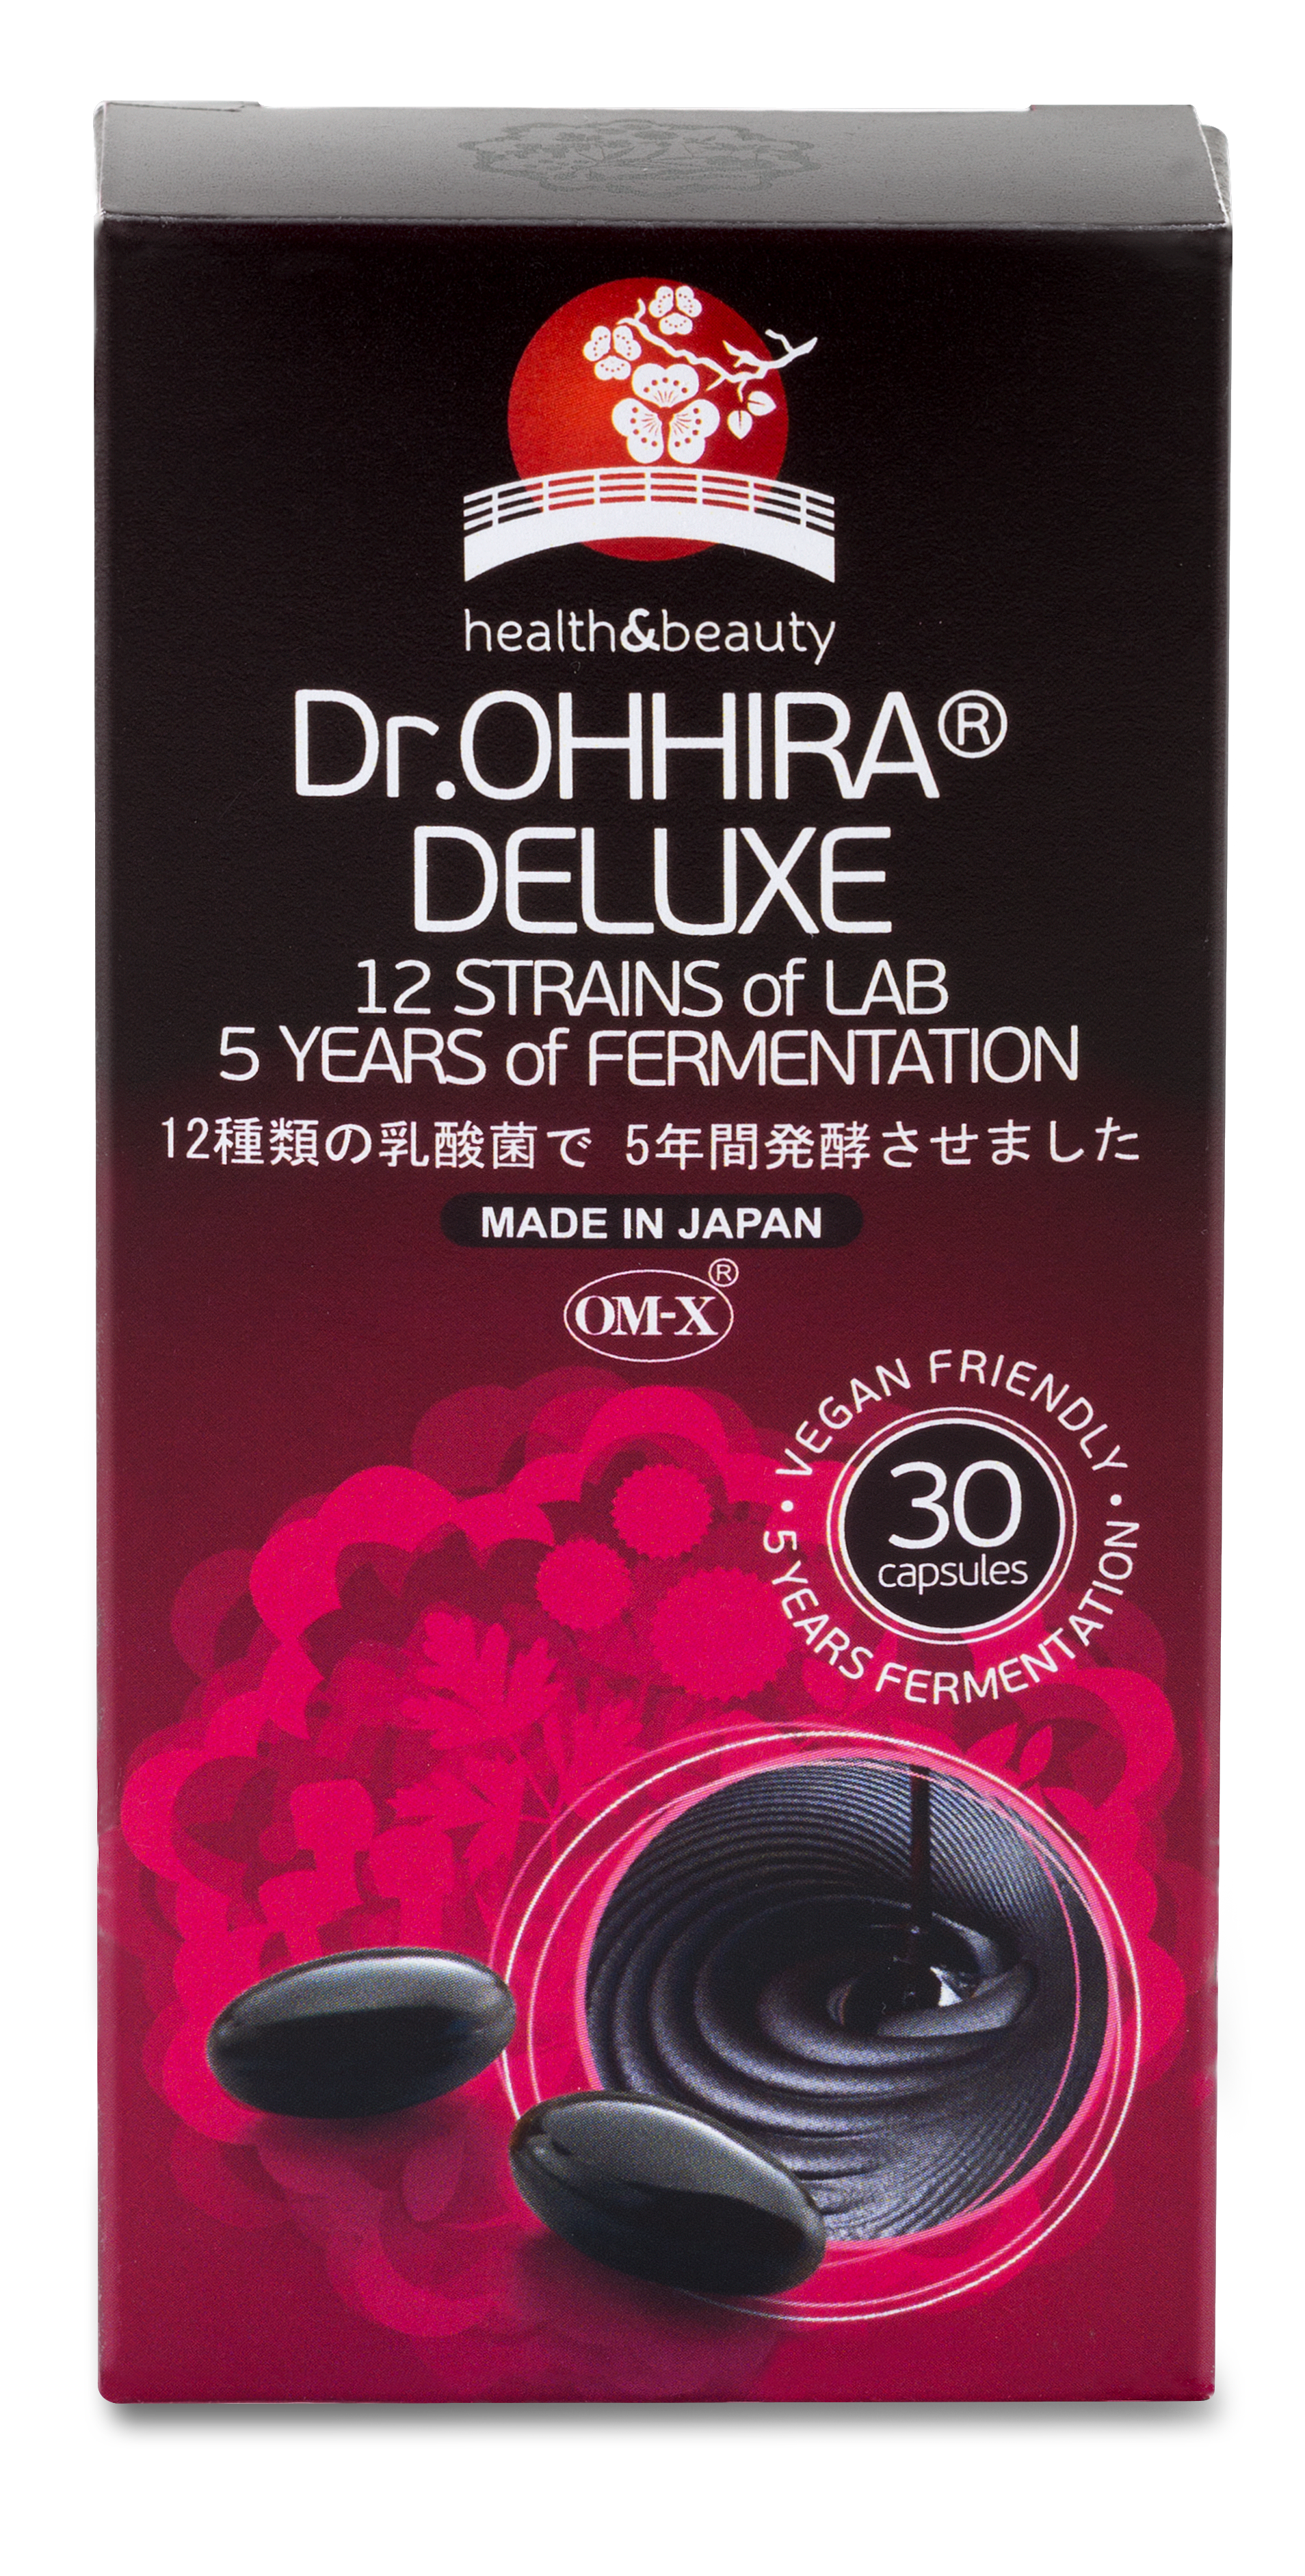 Dr.OHHIRA DELUXE